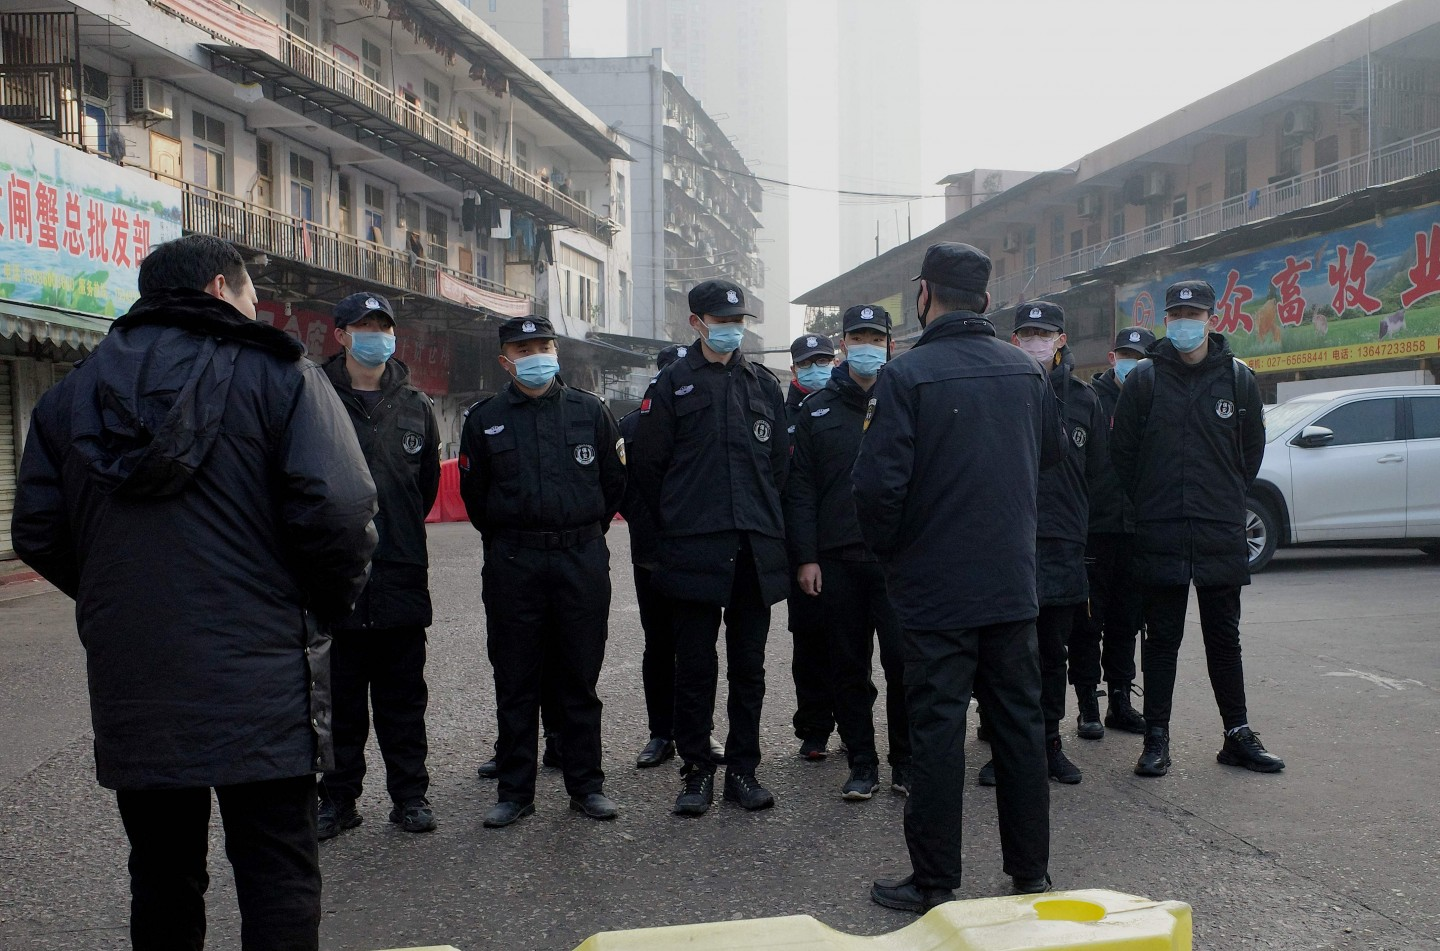 In this file photograph taken on 11 January 2020 security guards stand in front of the closed Huanan wholesale seafood market, where health authorities say a man who died from a respiratory illness had purchased goods from. (Noel Celis/AFP)